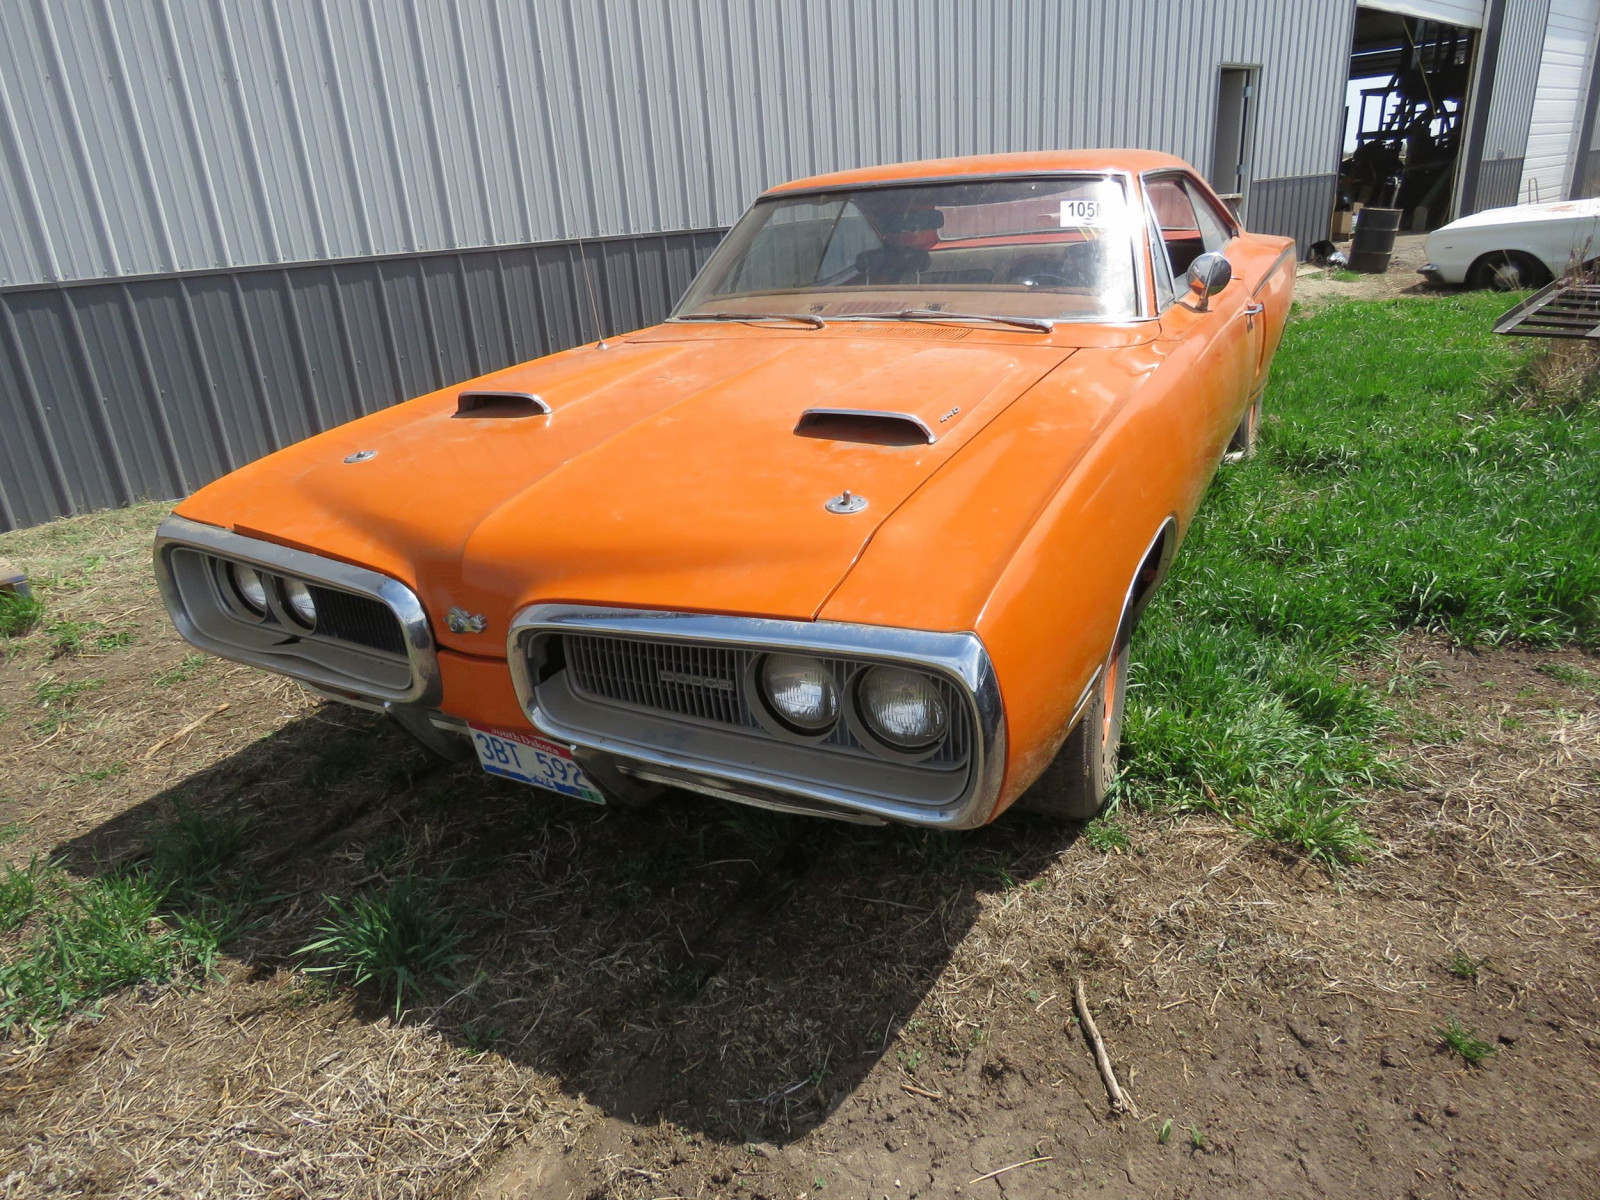 1970 Dodge Super Bee 440 6 Pack Coupe - Image 3